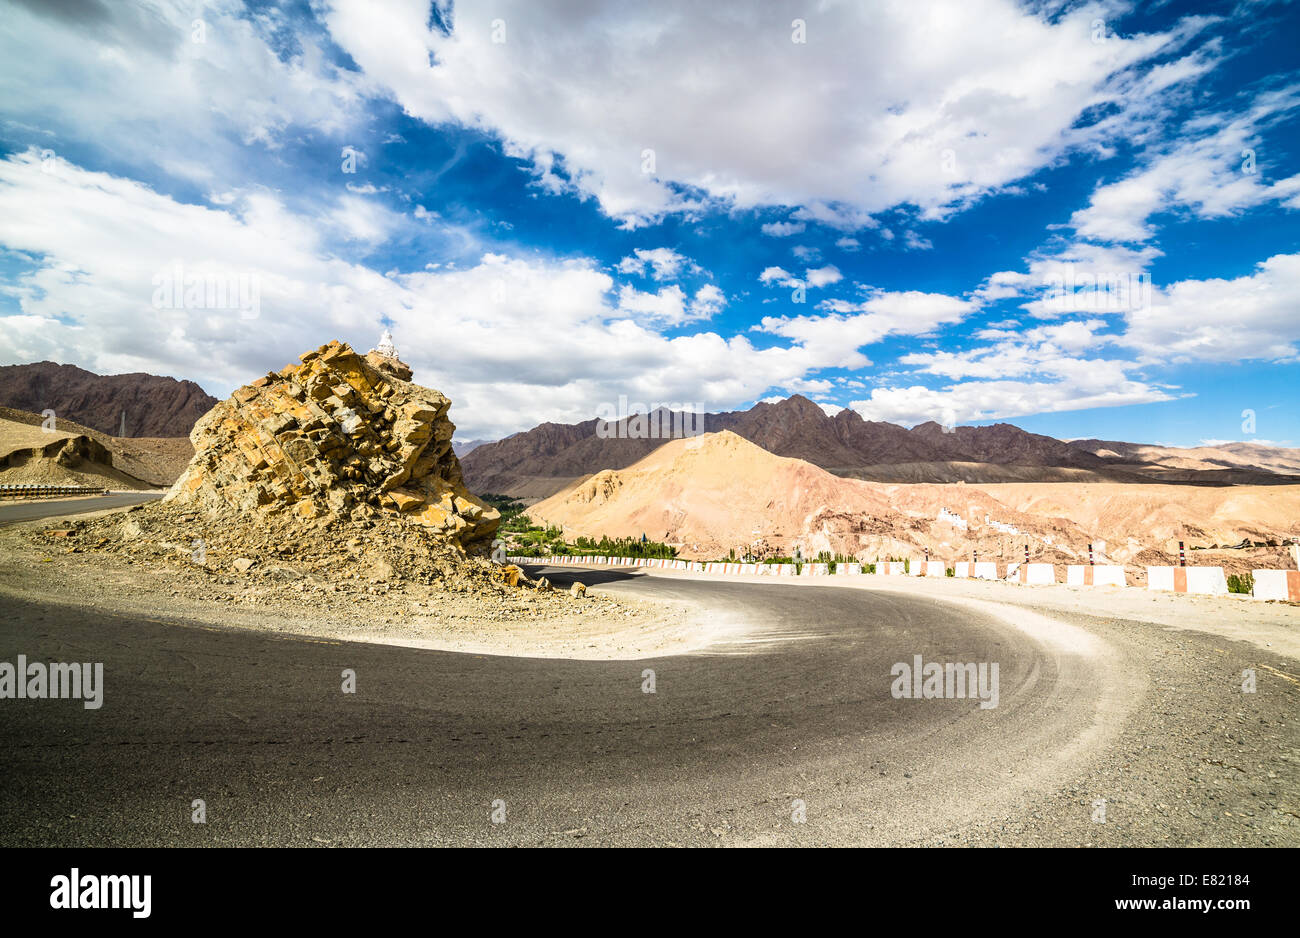 On the road in the remote Indus valley in Ladakh in north India. - Stock Image